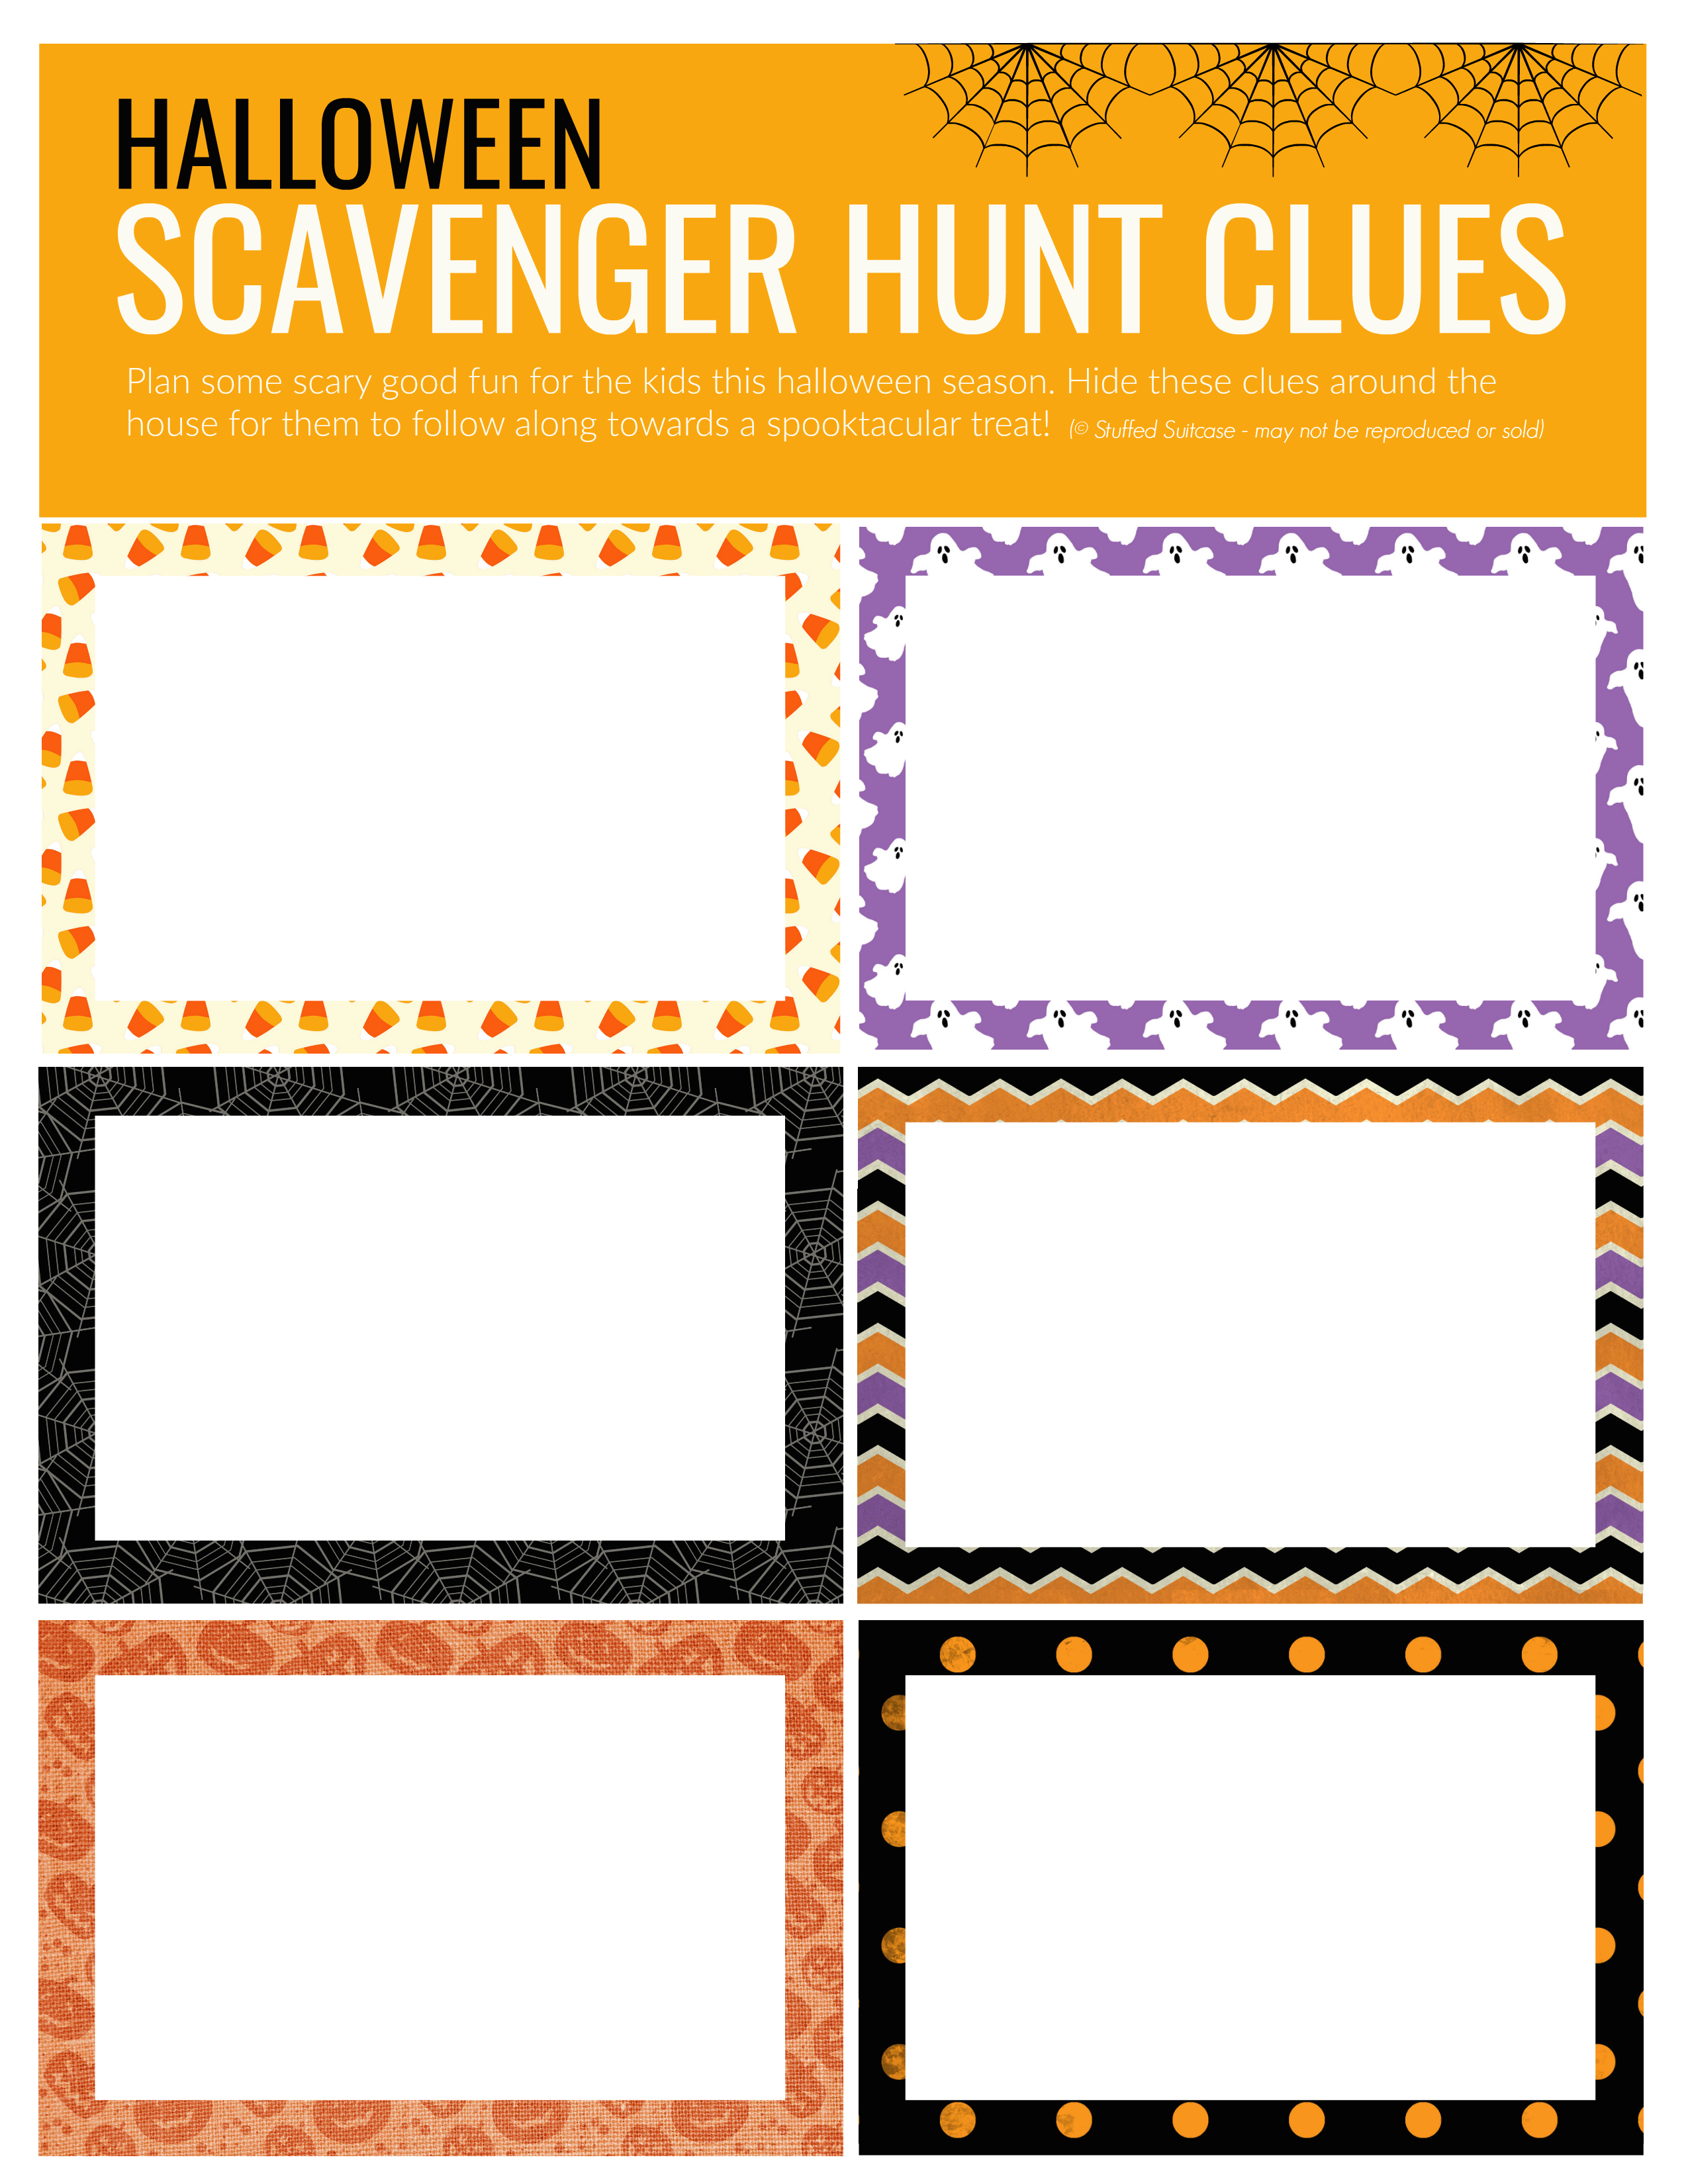 Halloween Scavenger Hunt How To Plan A Surprise For Your Kids